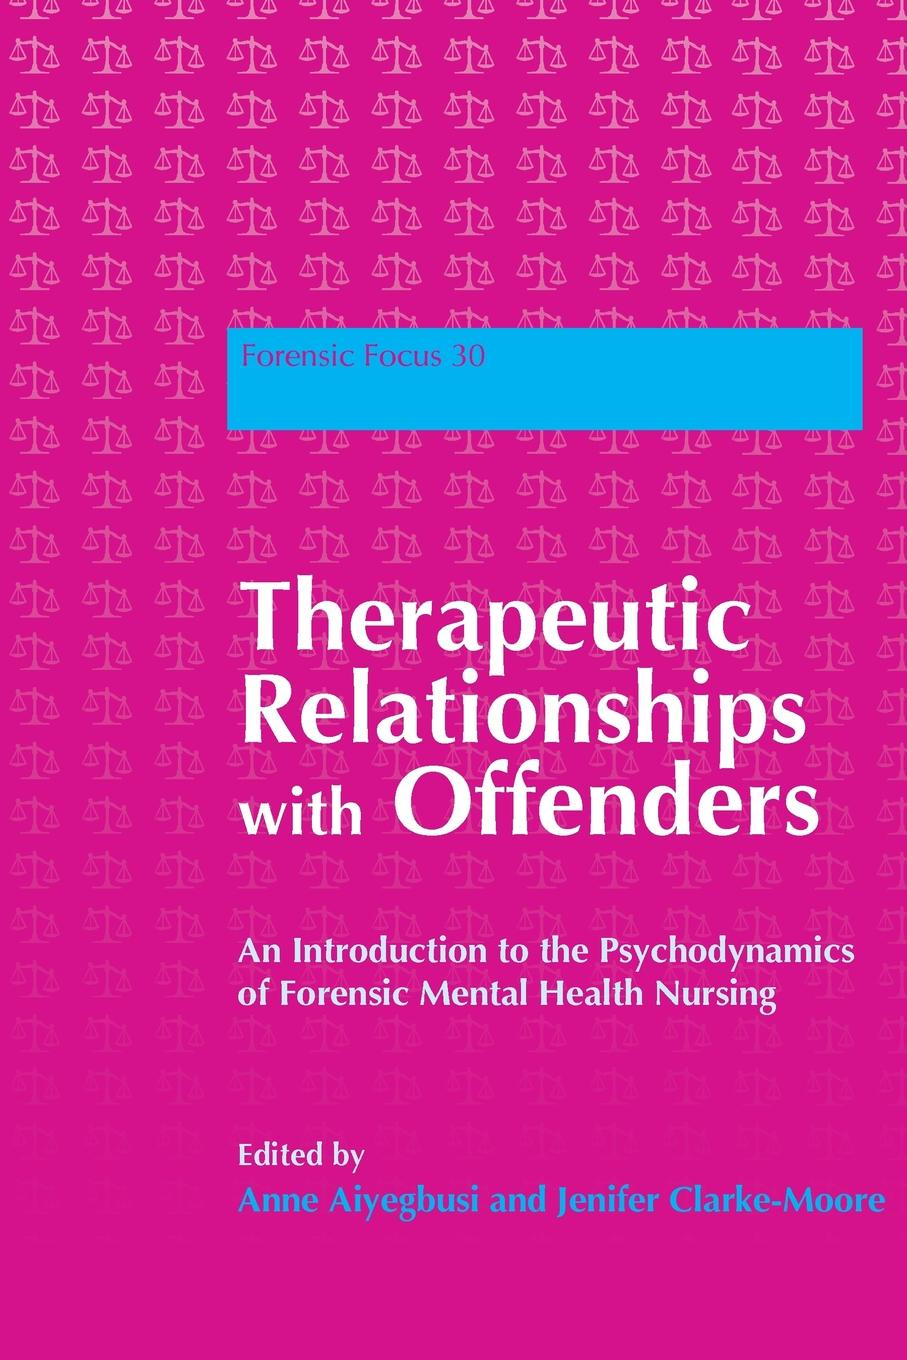 Therapeutic Relationships with Offenders. An Introduction to the Psychodynamics of Forensic Mental Health Nursing elisa bergslien an introduction to forensic geoscience